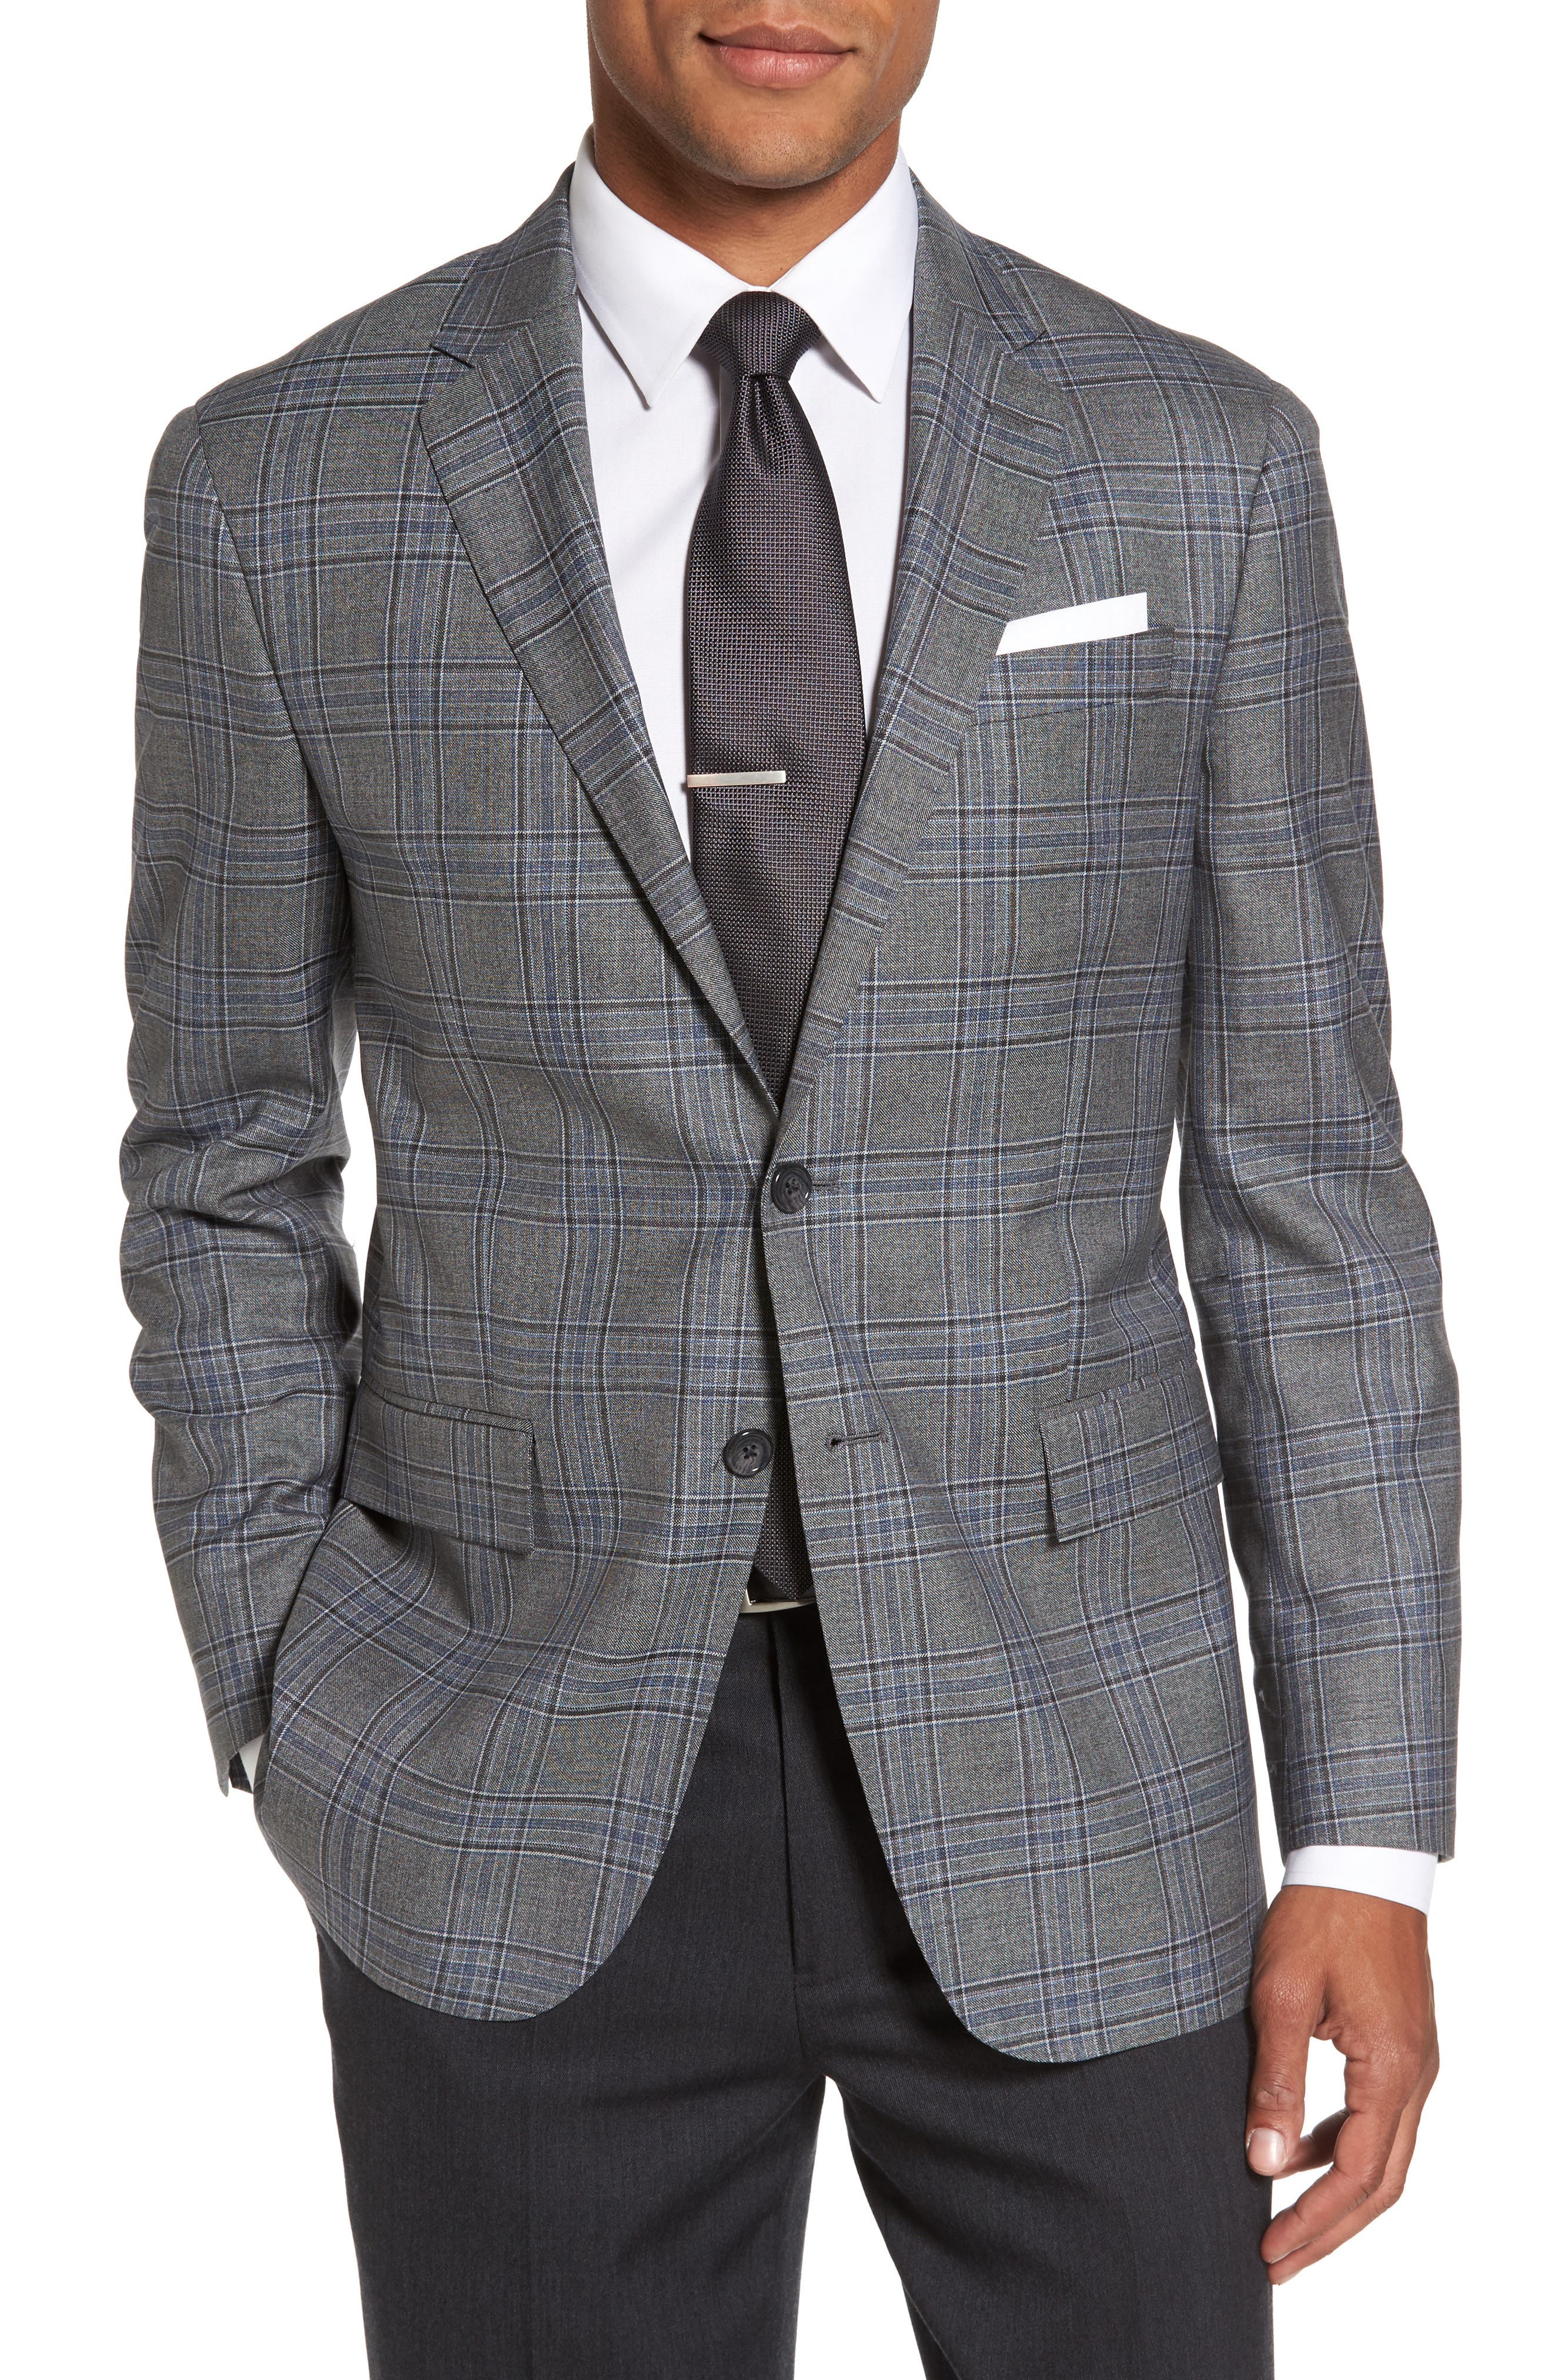 Todd Snyder White Label Trim Fit Plaid Wool Sport Coat